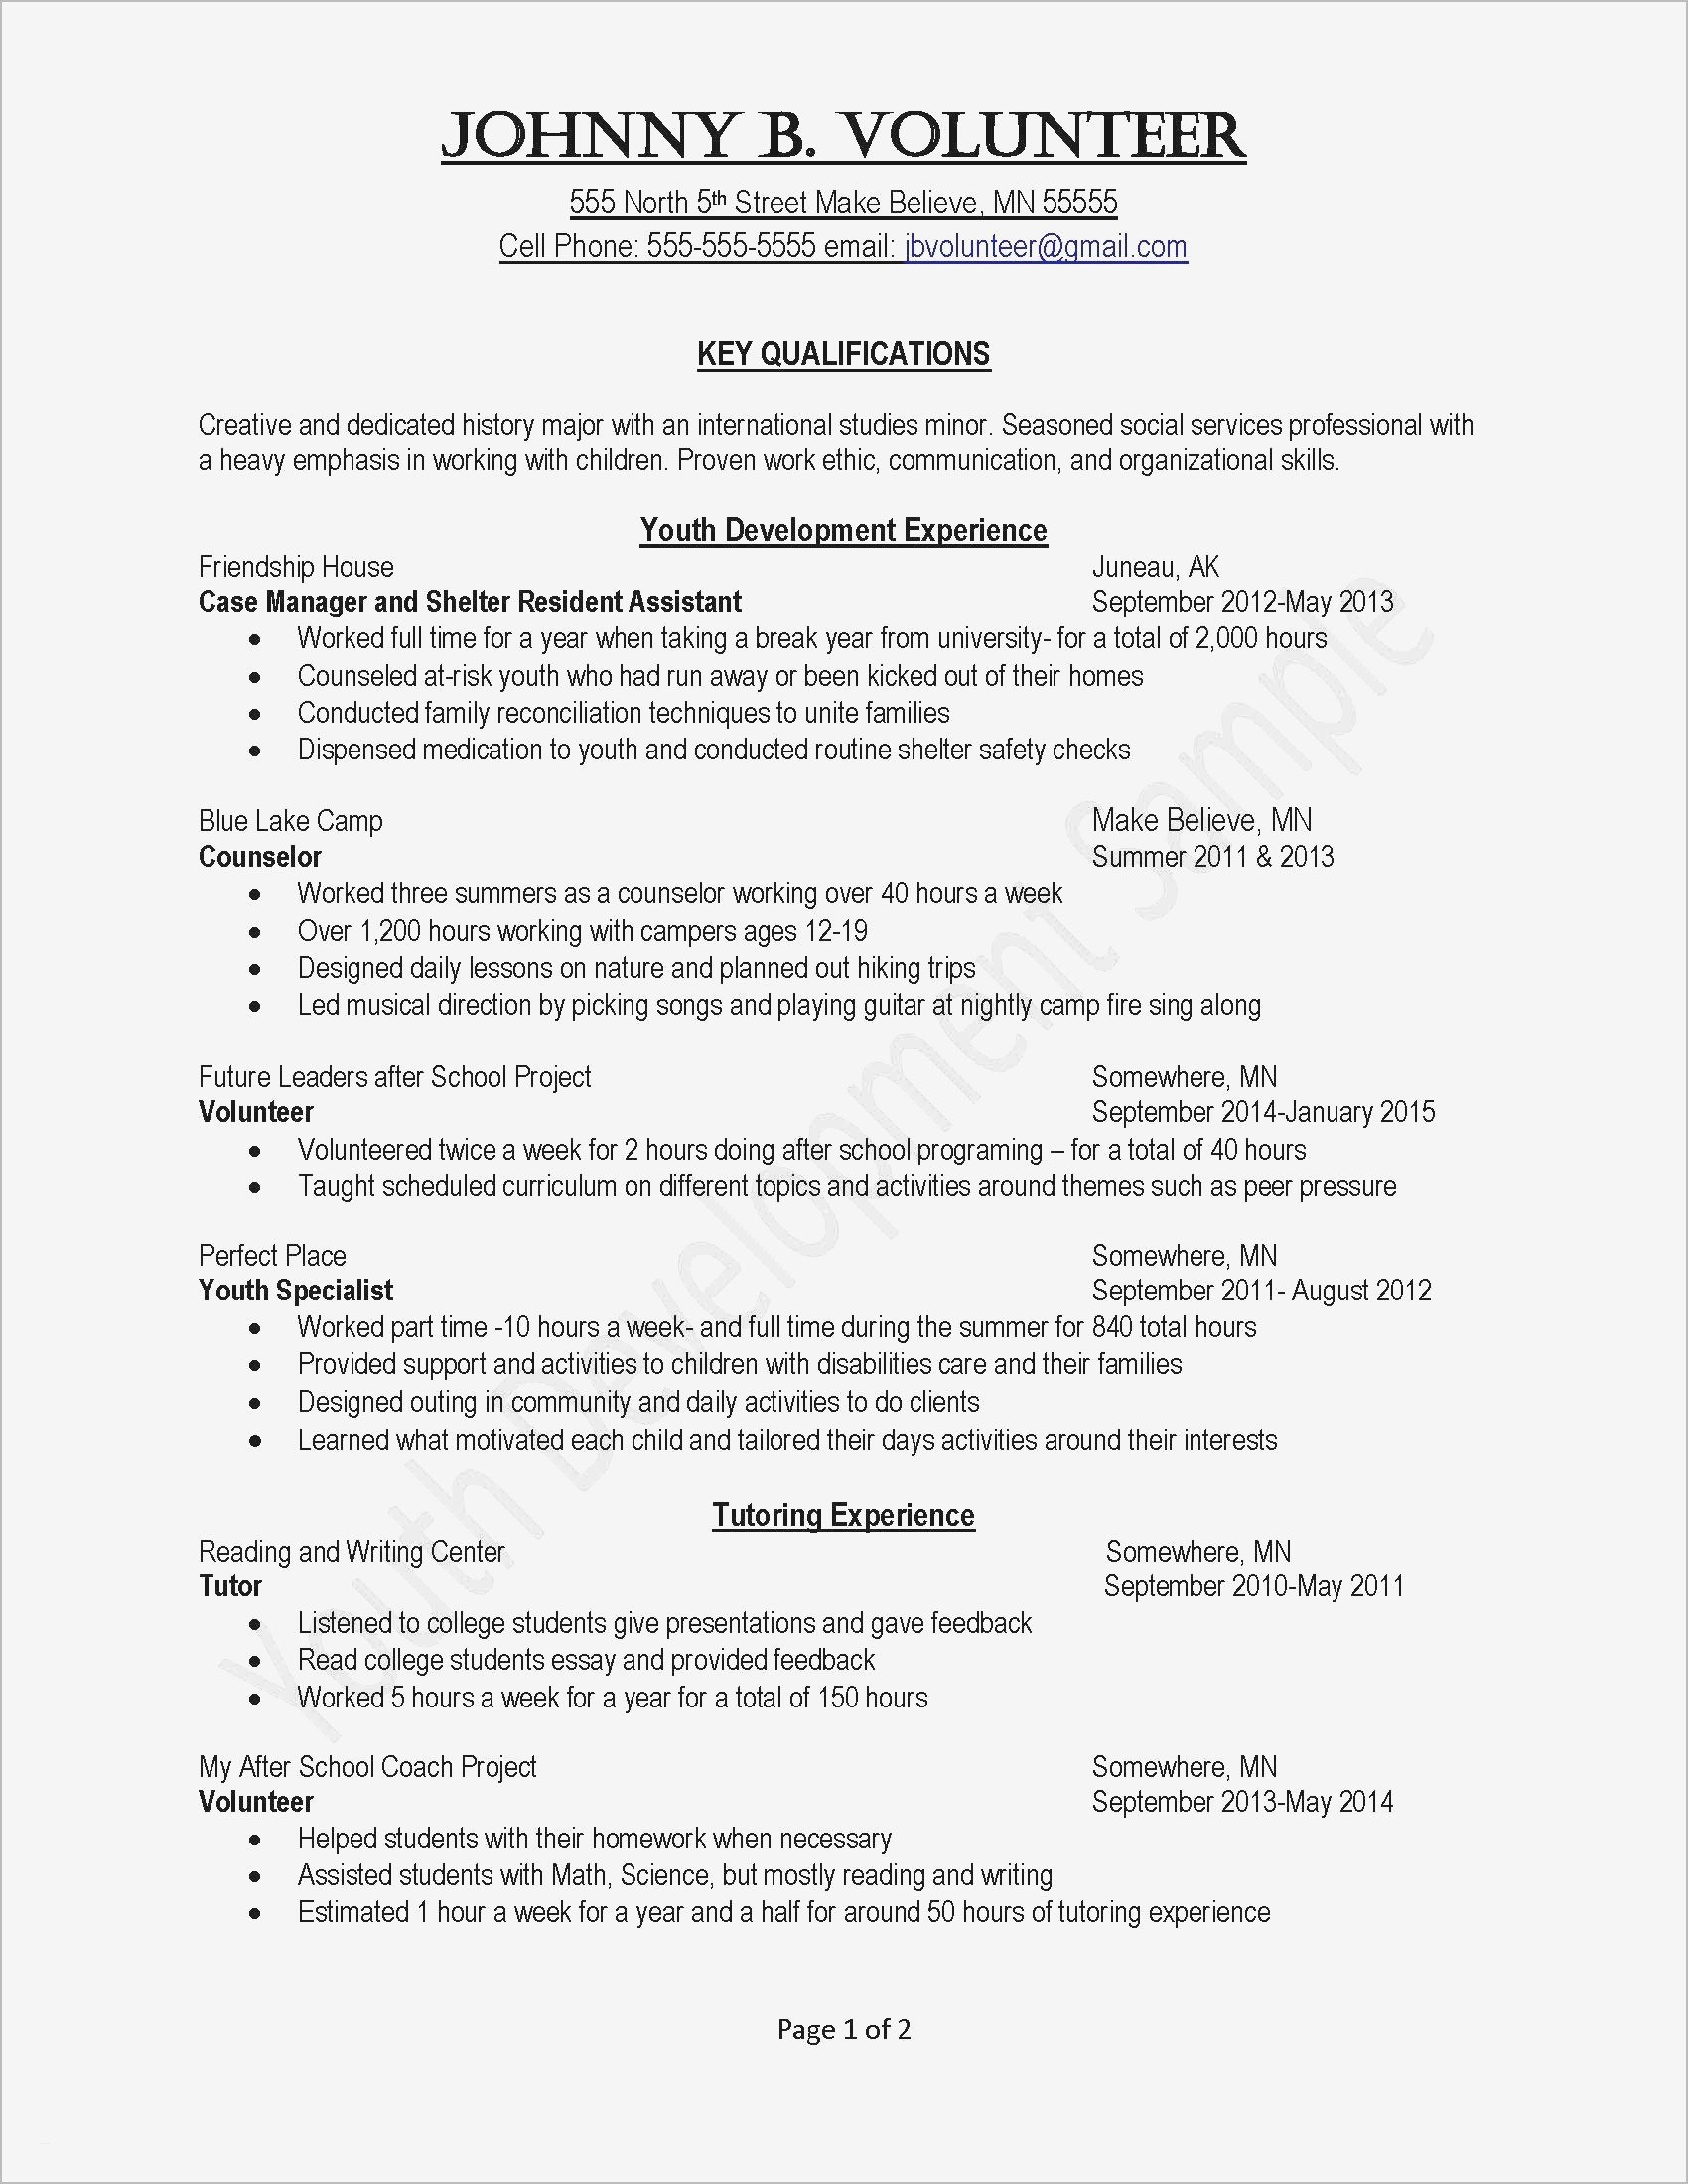 Free Resume Com | Cover Letter Templates Title Processor Free Cover Letter Templates